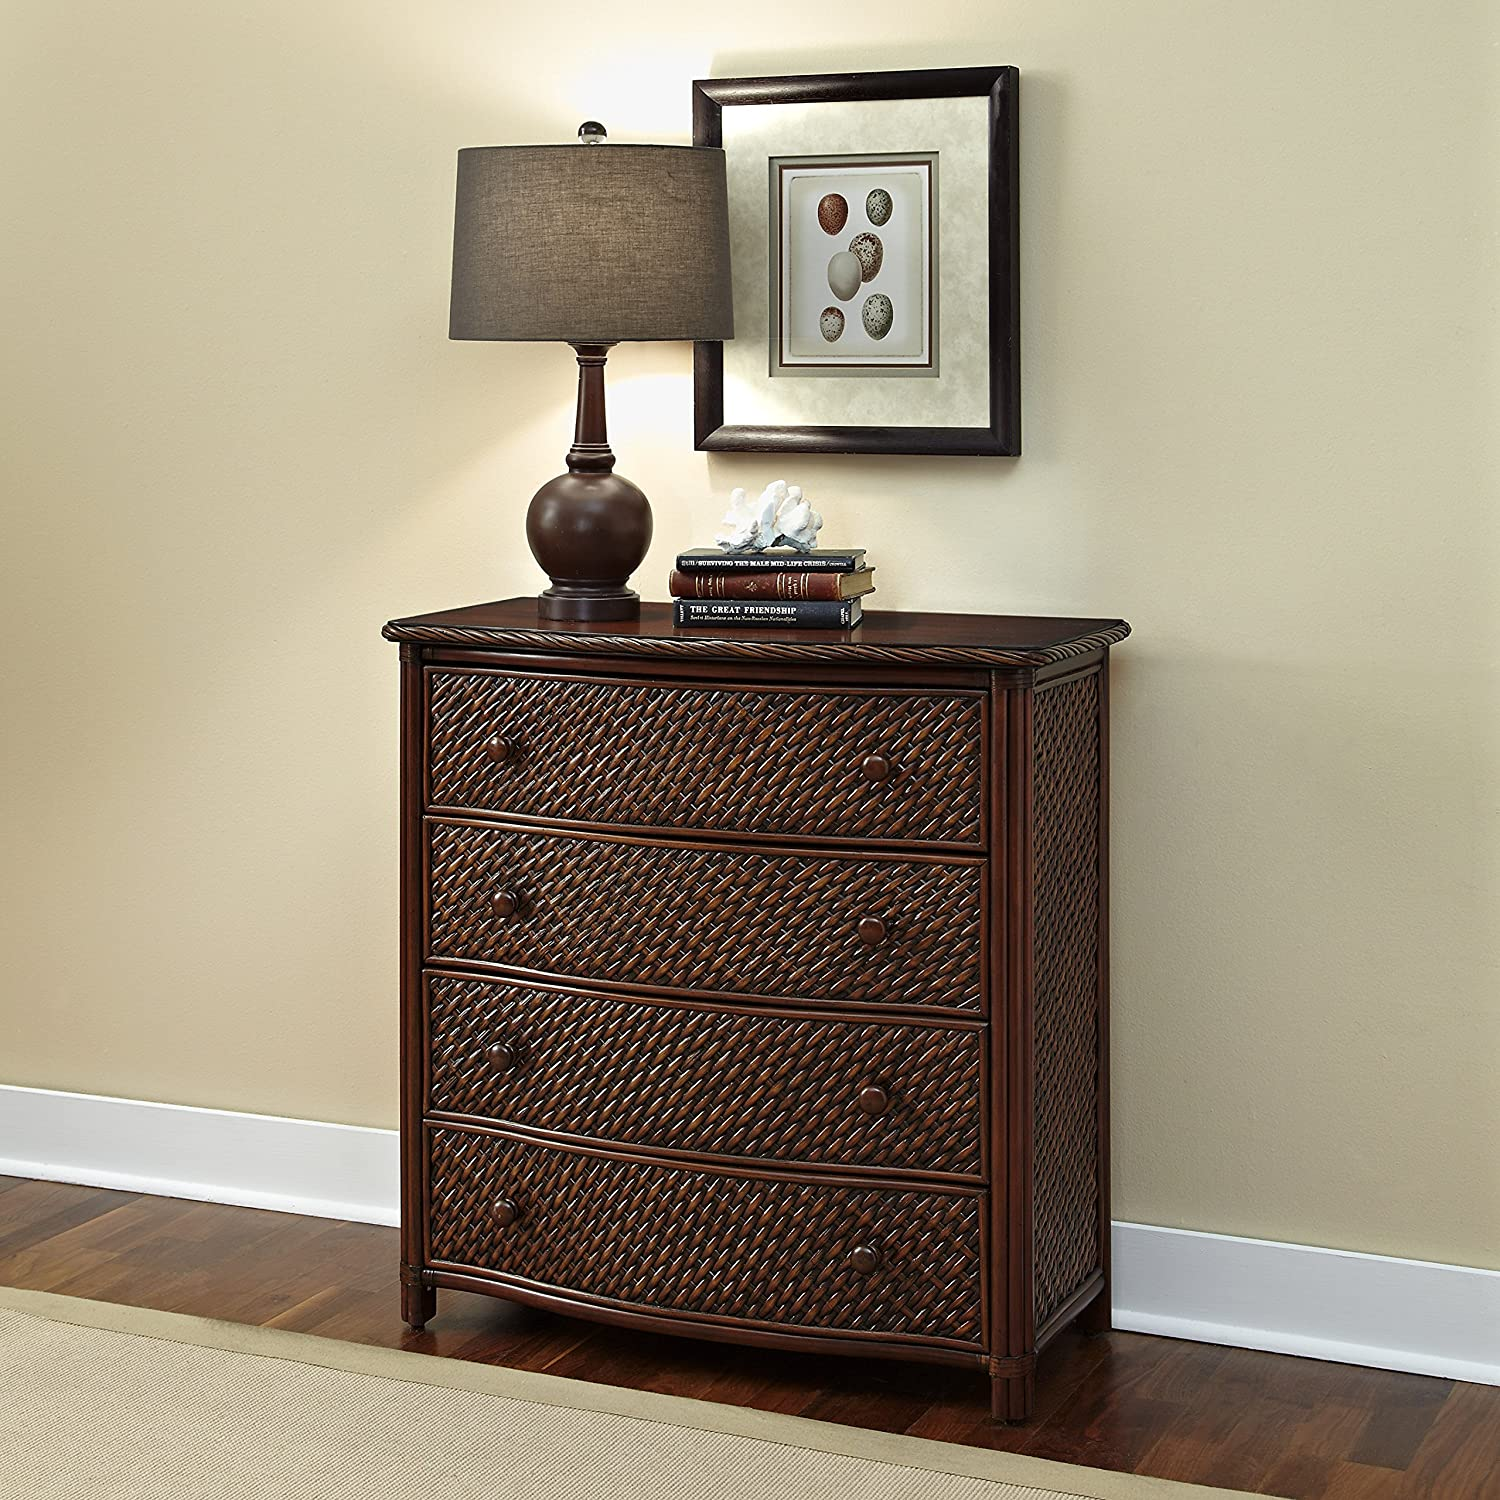 Amazon.com: Home Styles Model 5544 41 Marco Island Drawer Chest, Cinnamon  Finish: Kitchen U0026 Dining